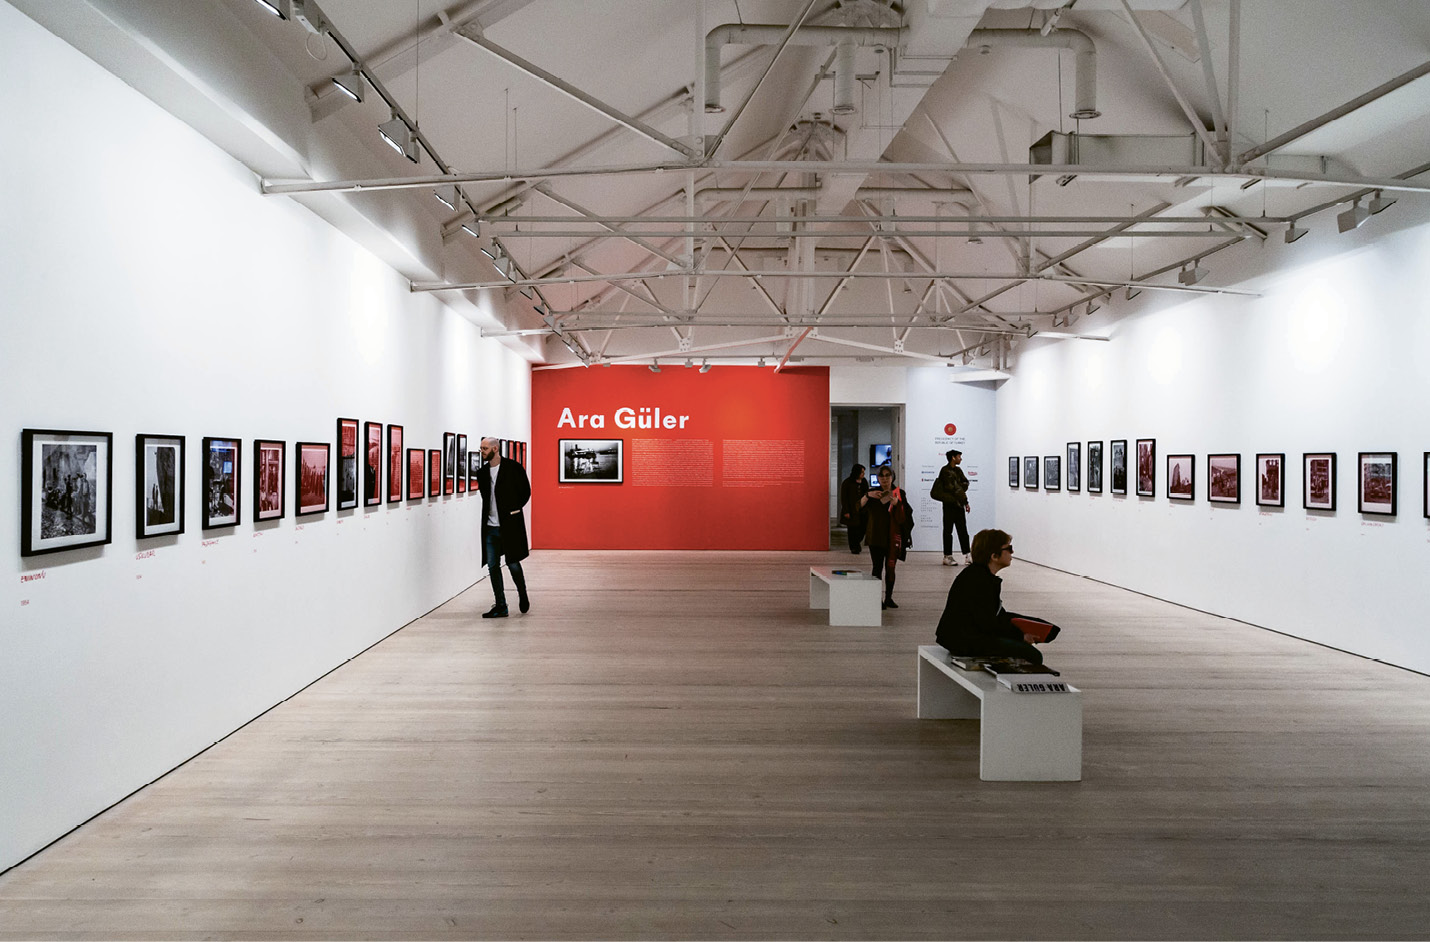 A retrospective of the works of Turkish photojournalist Ara Güler at Chelsea's Saatchi Gallery last spring